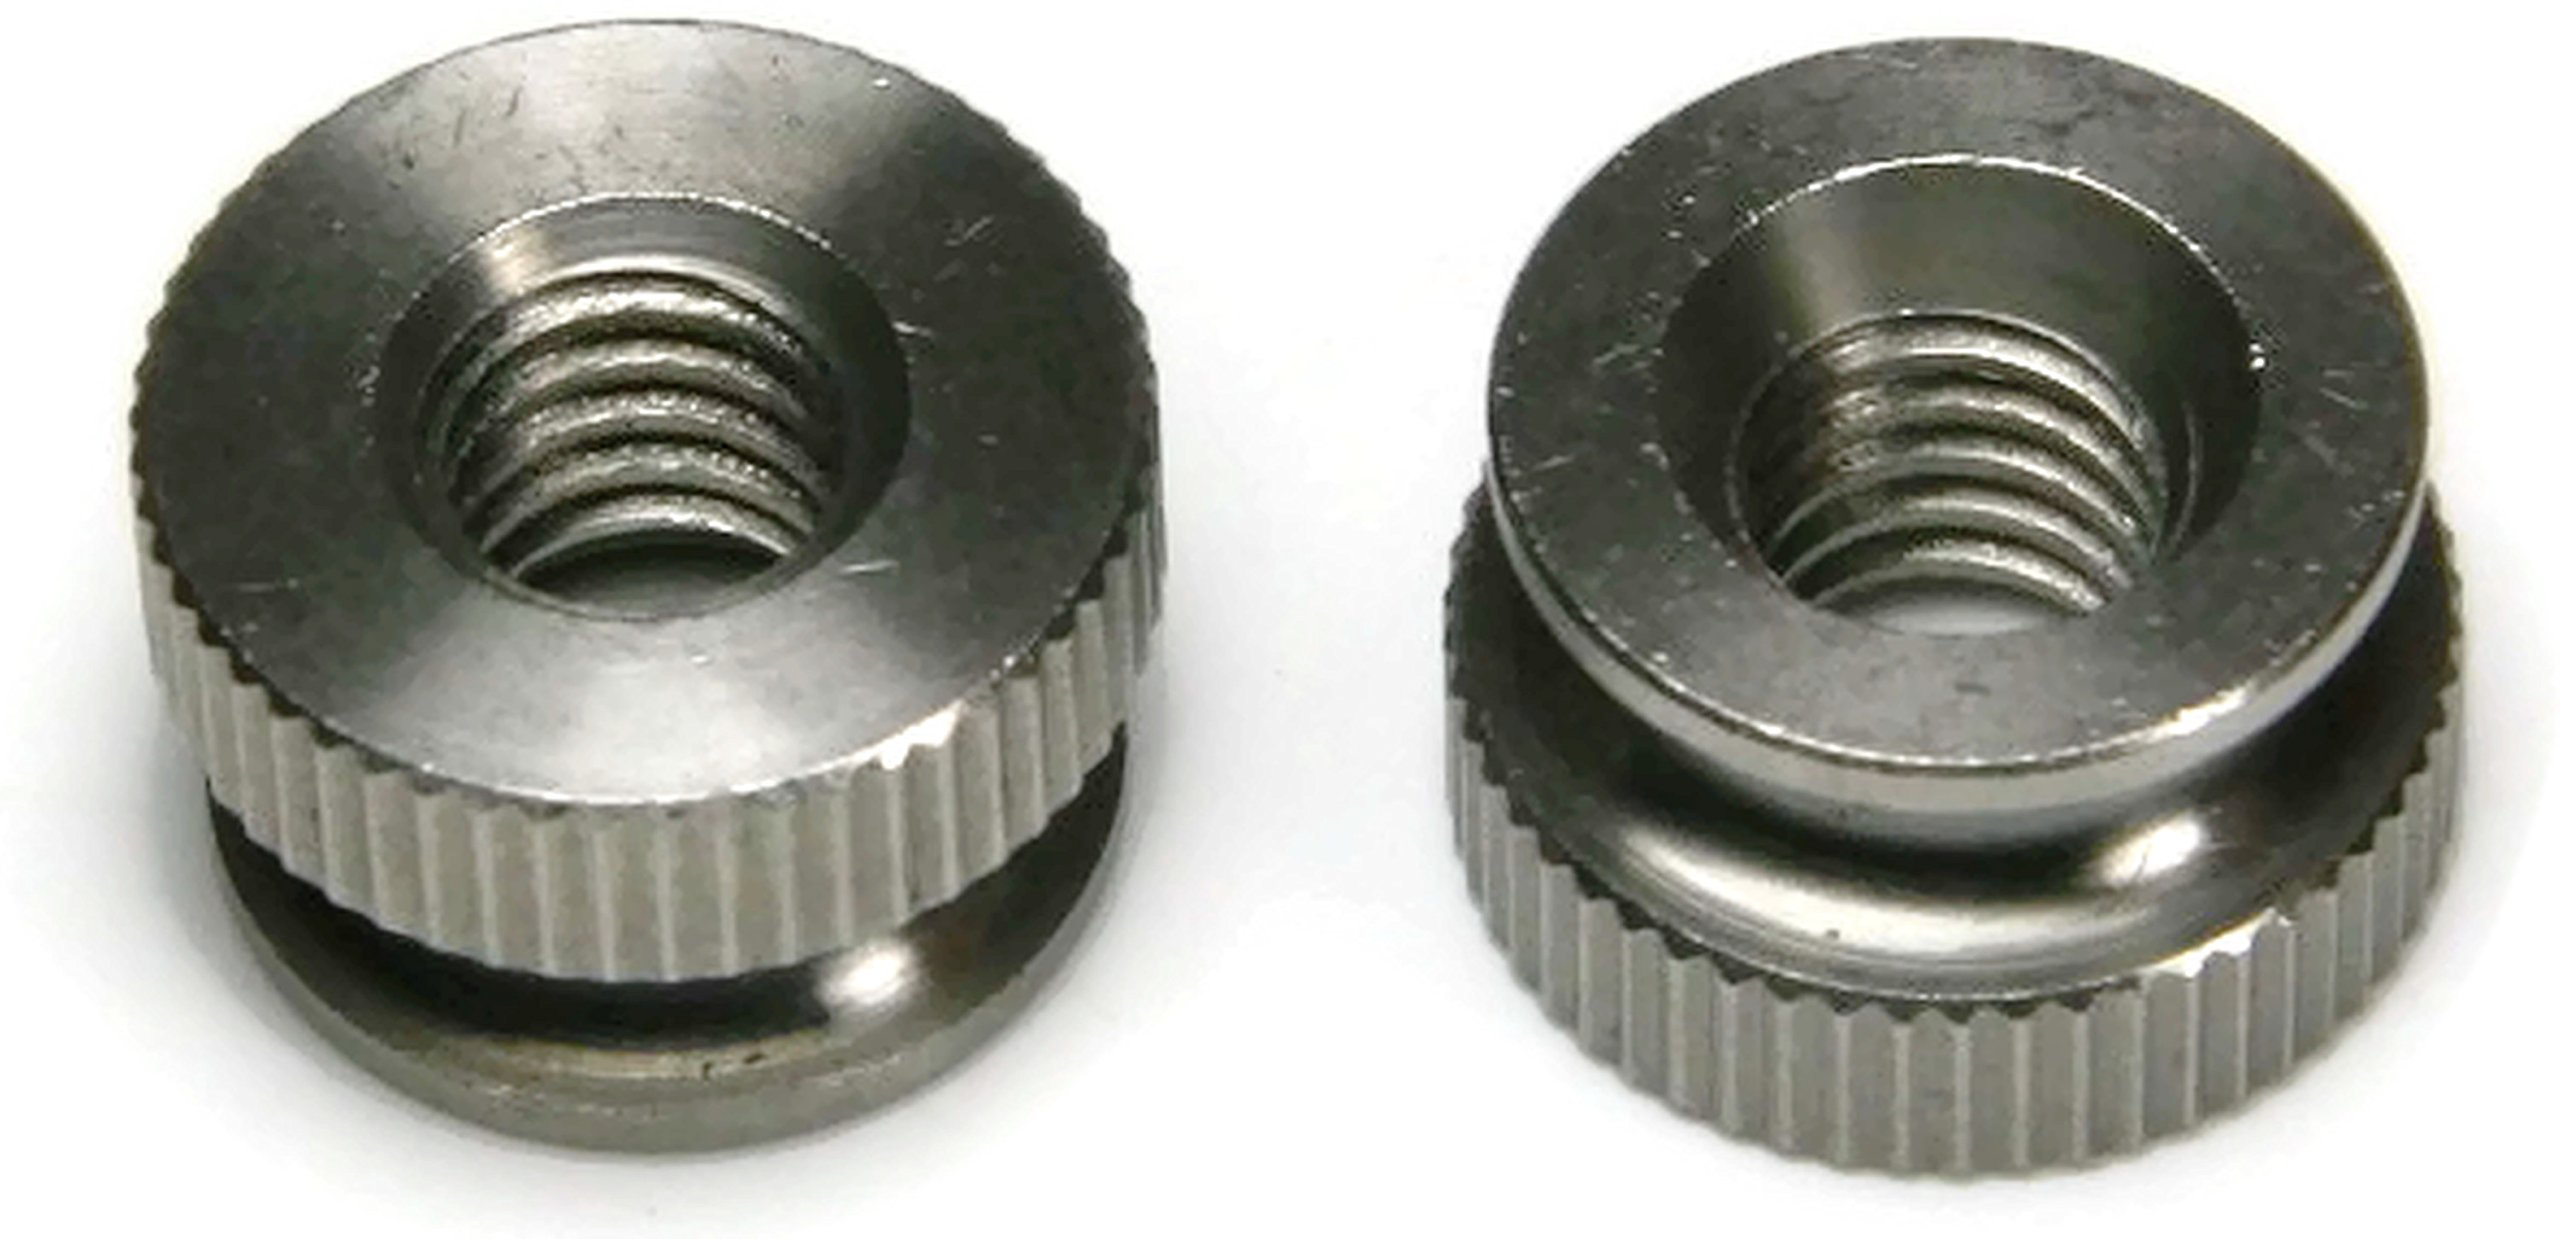 Knurled Head Thumb Nut 18-8 Stainless Steel Nuts USA MADE - #8-32 (7/16'' Dia x 1/4'' THK) - Qty-2,500